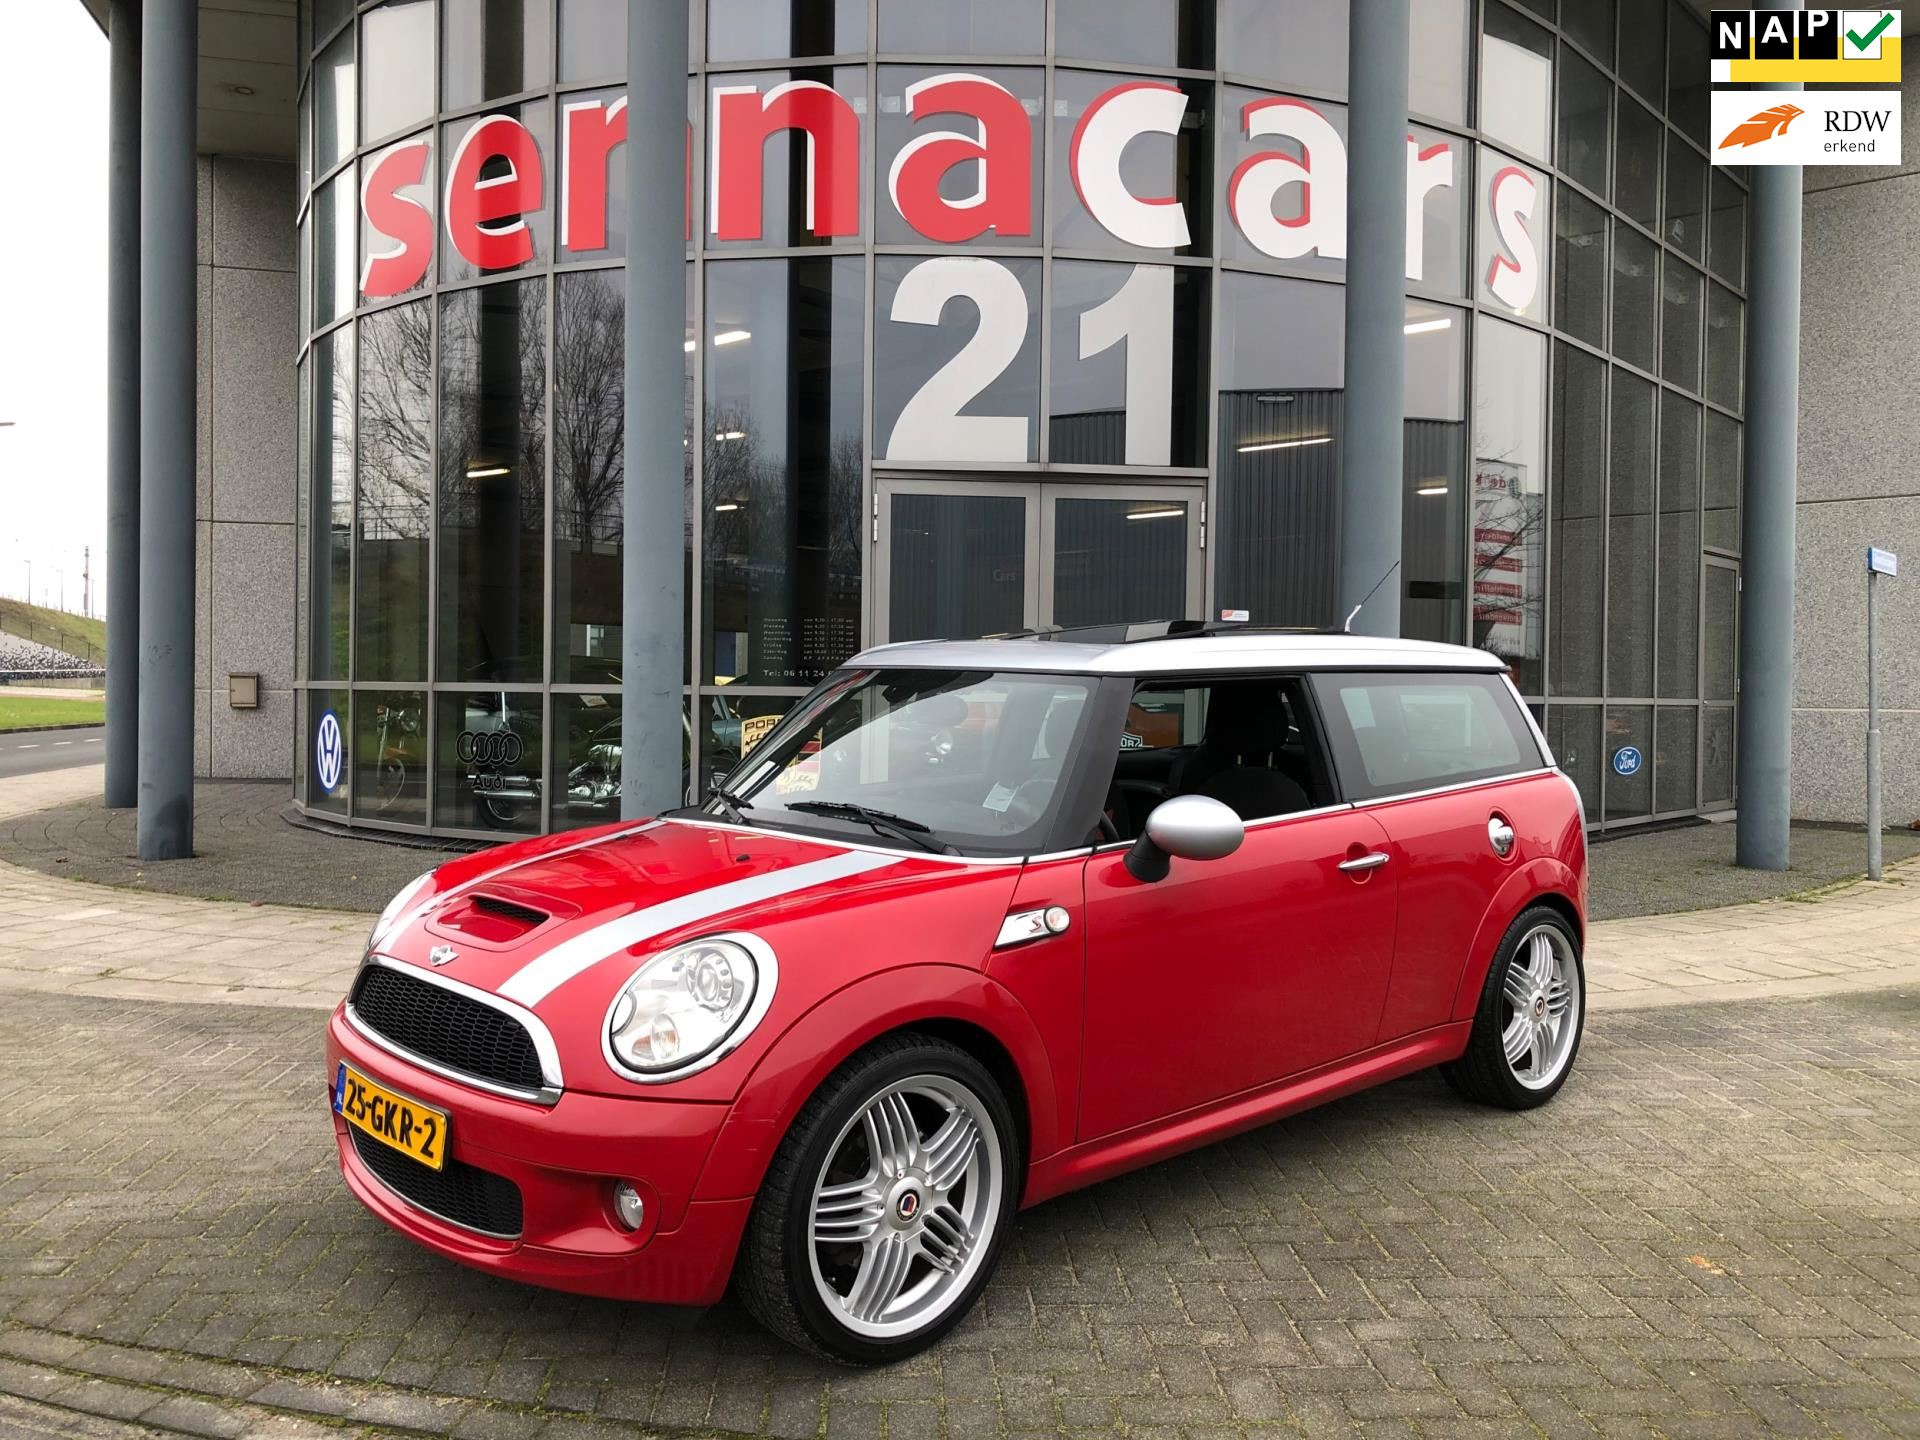 Mini Clubman occasion - Senna Cars